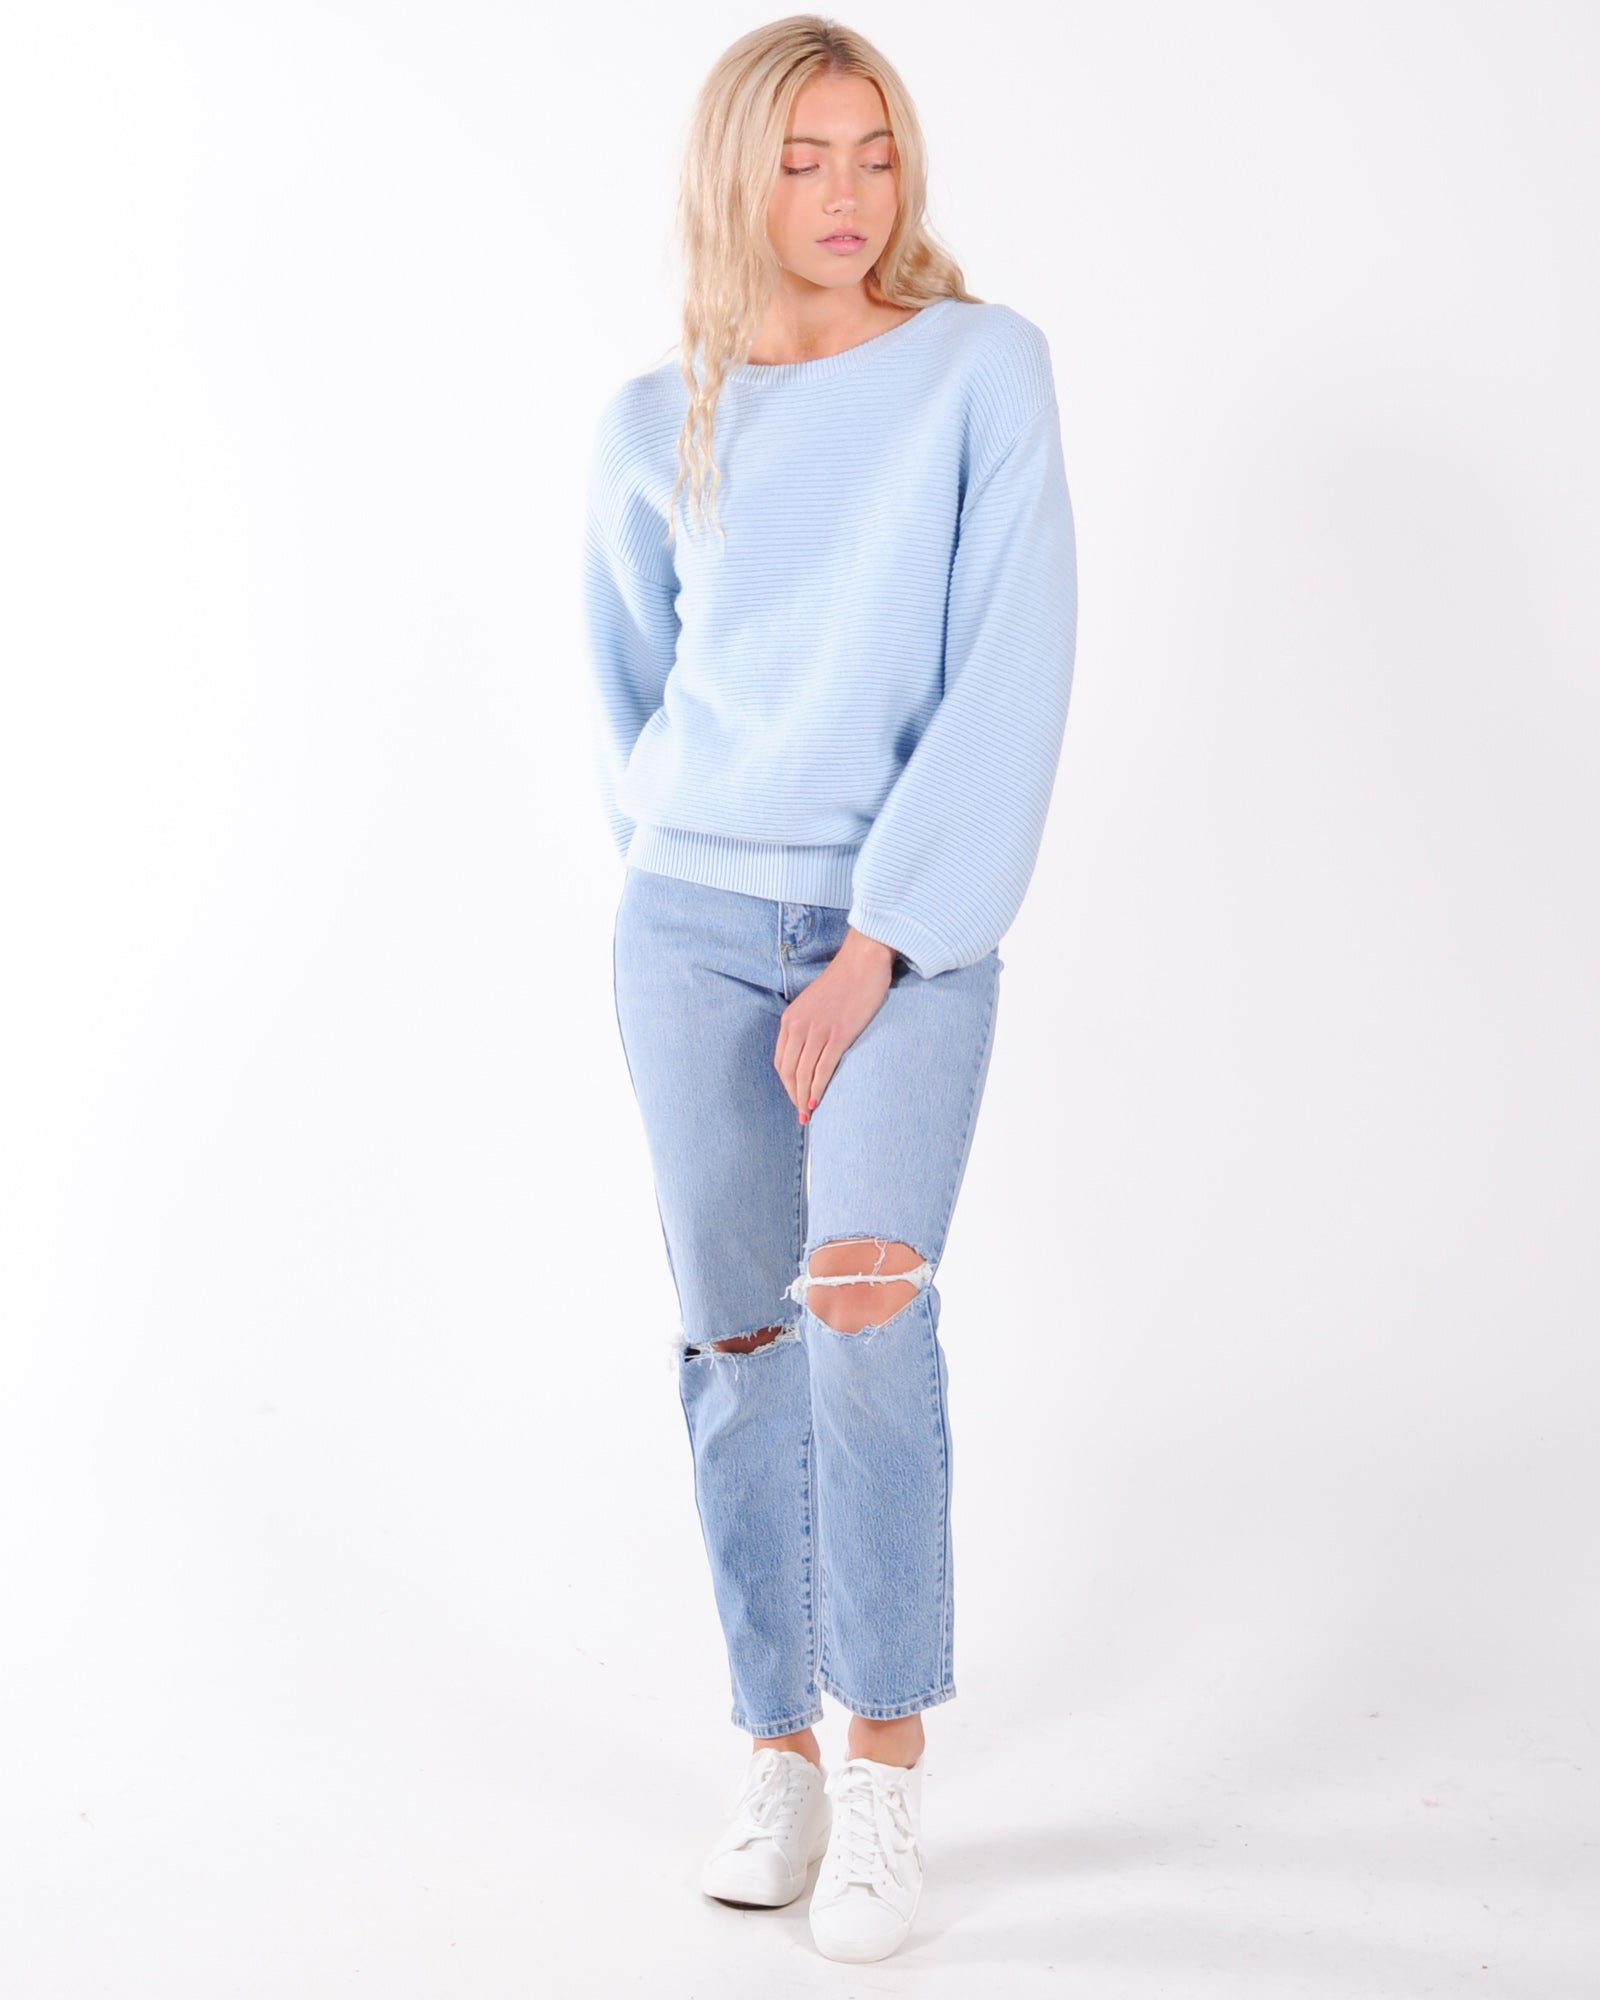 Rule Breaker Knit Jumper - Blue